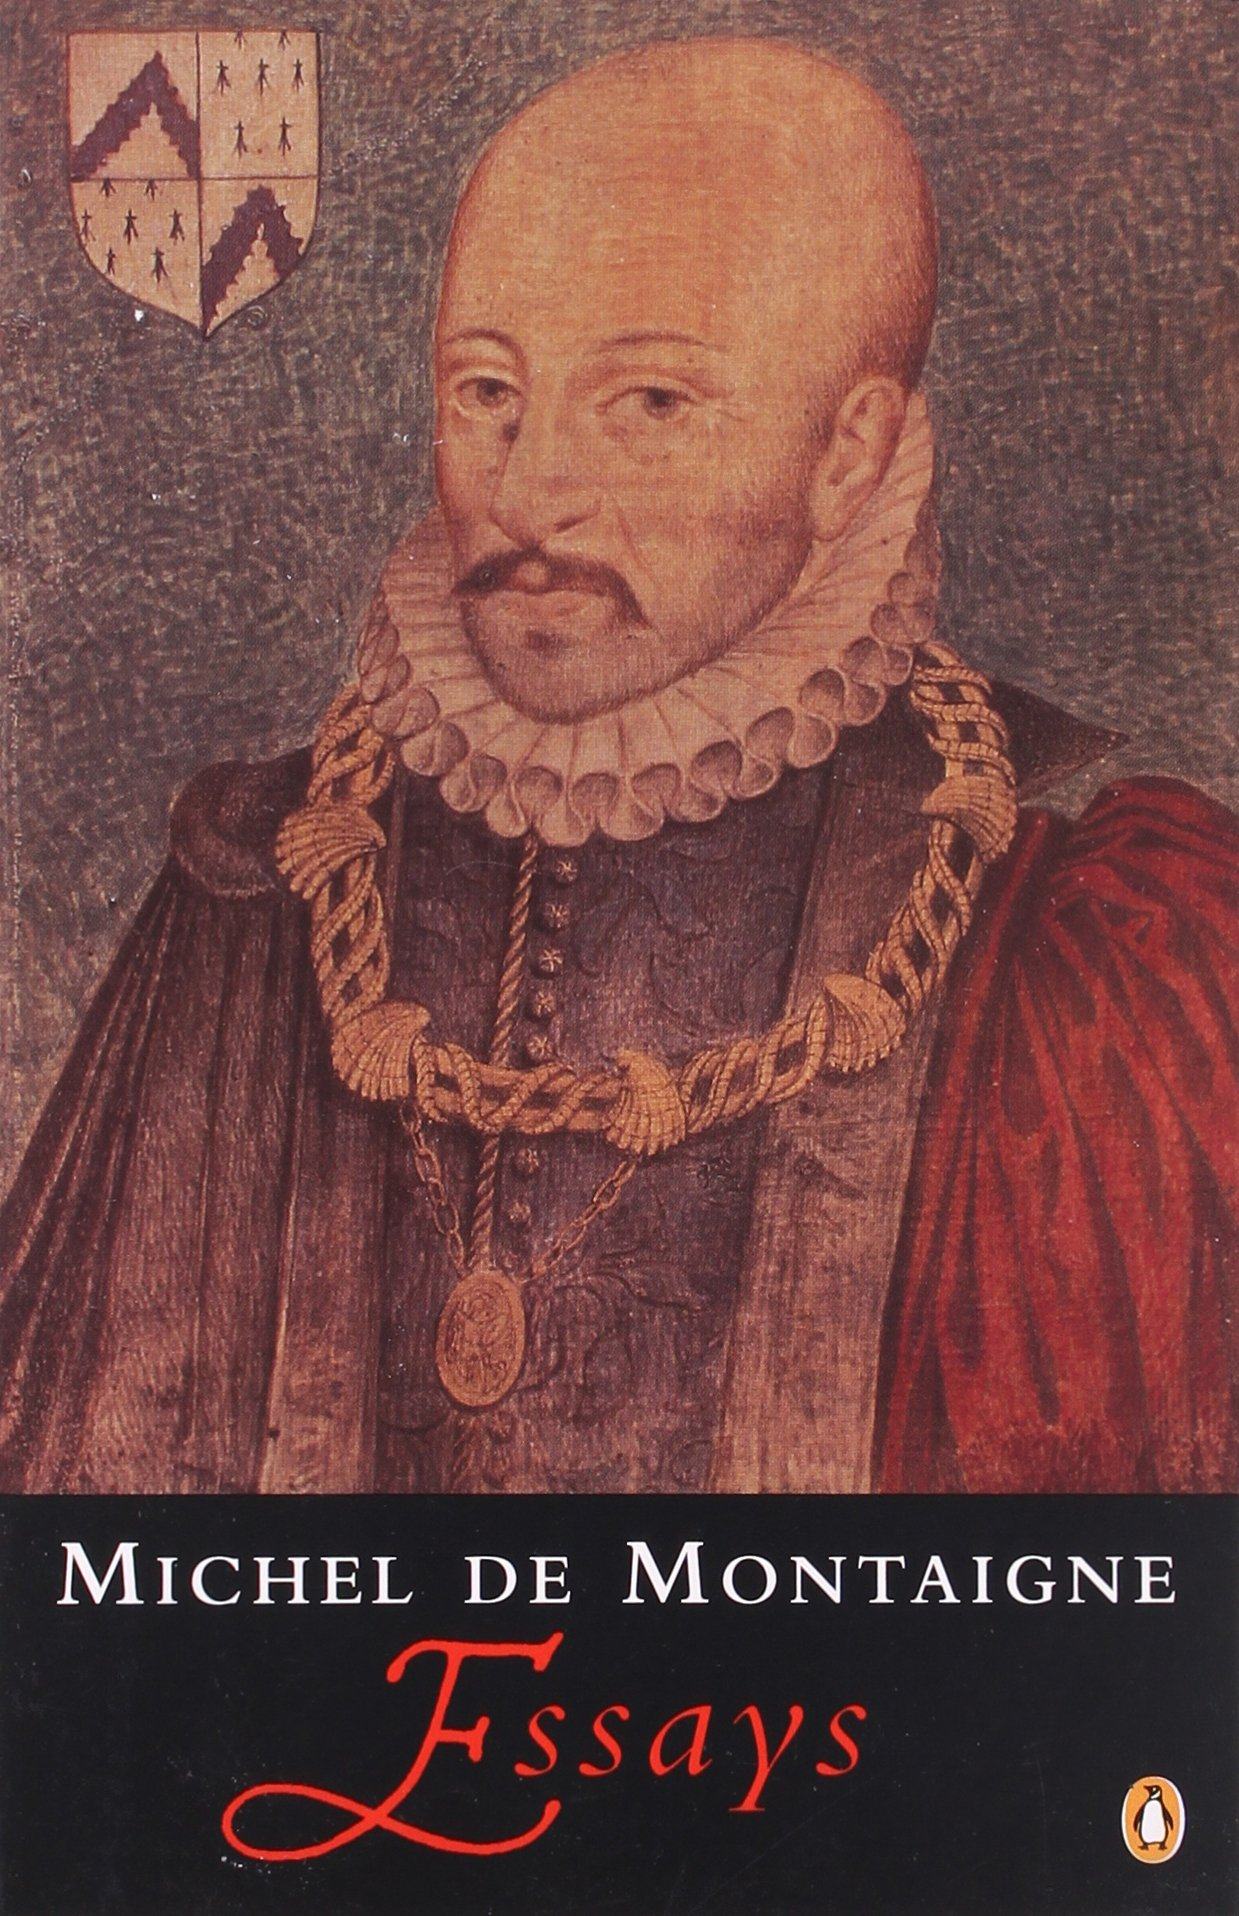 complete essays montaigne penguin Buy the complete essays by michel de montaigne, m singlehandedly responsible for popularising the essay as a literary form this penguin classics edition of.